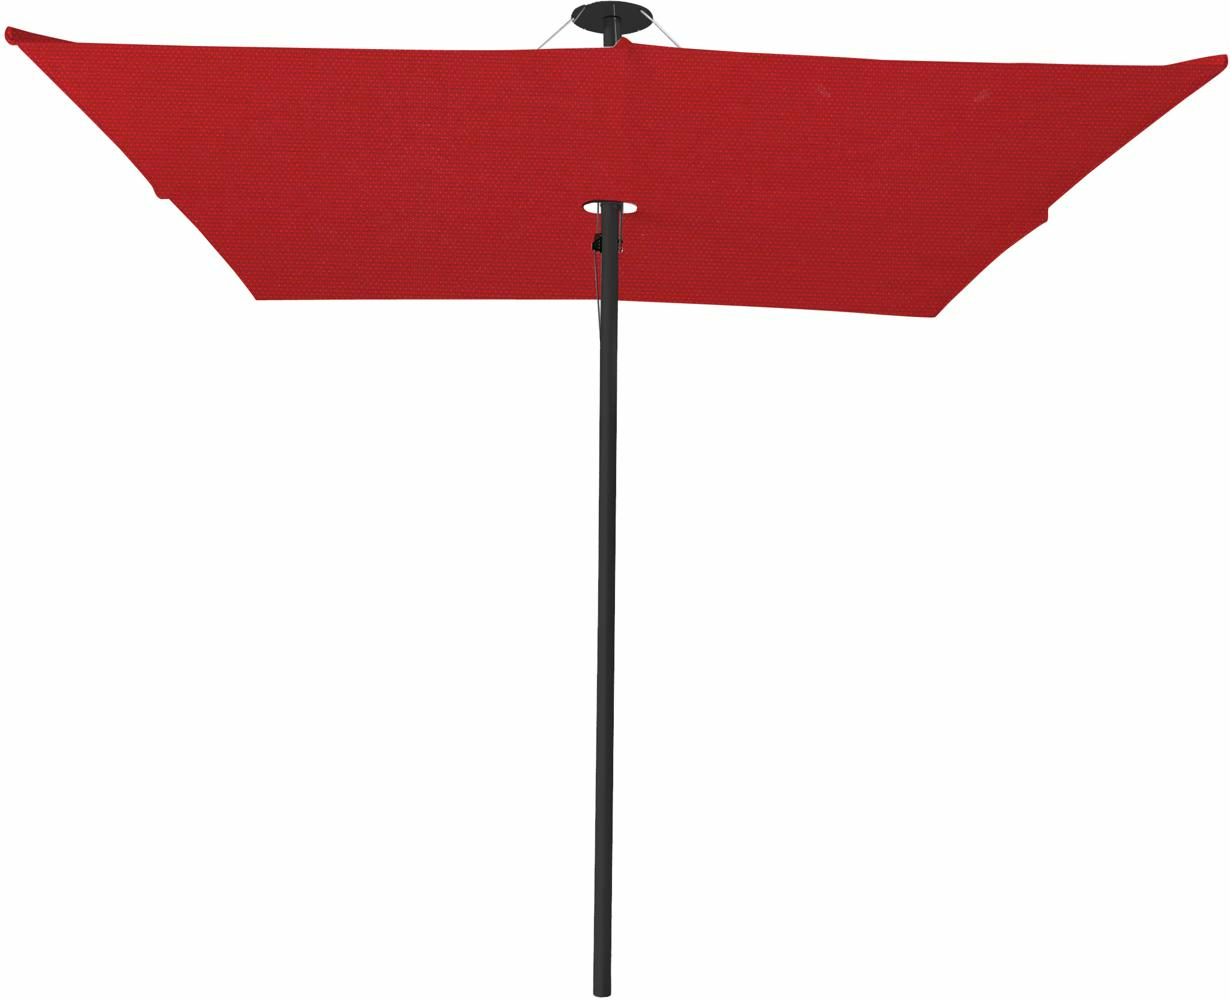 Infina center post umbrella, 3 m square, with frame in Dusk and Solidum Pepper canopy.